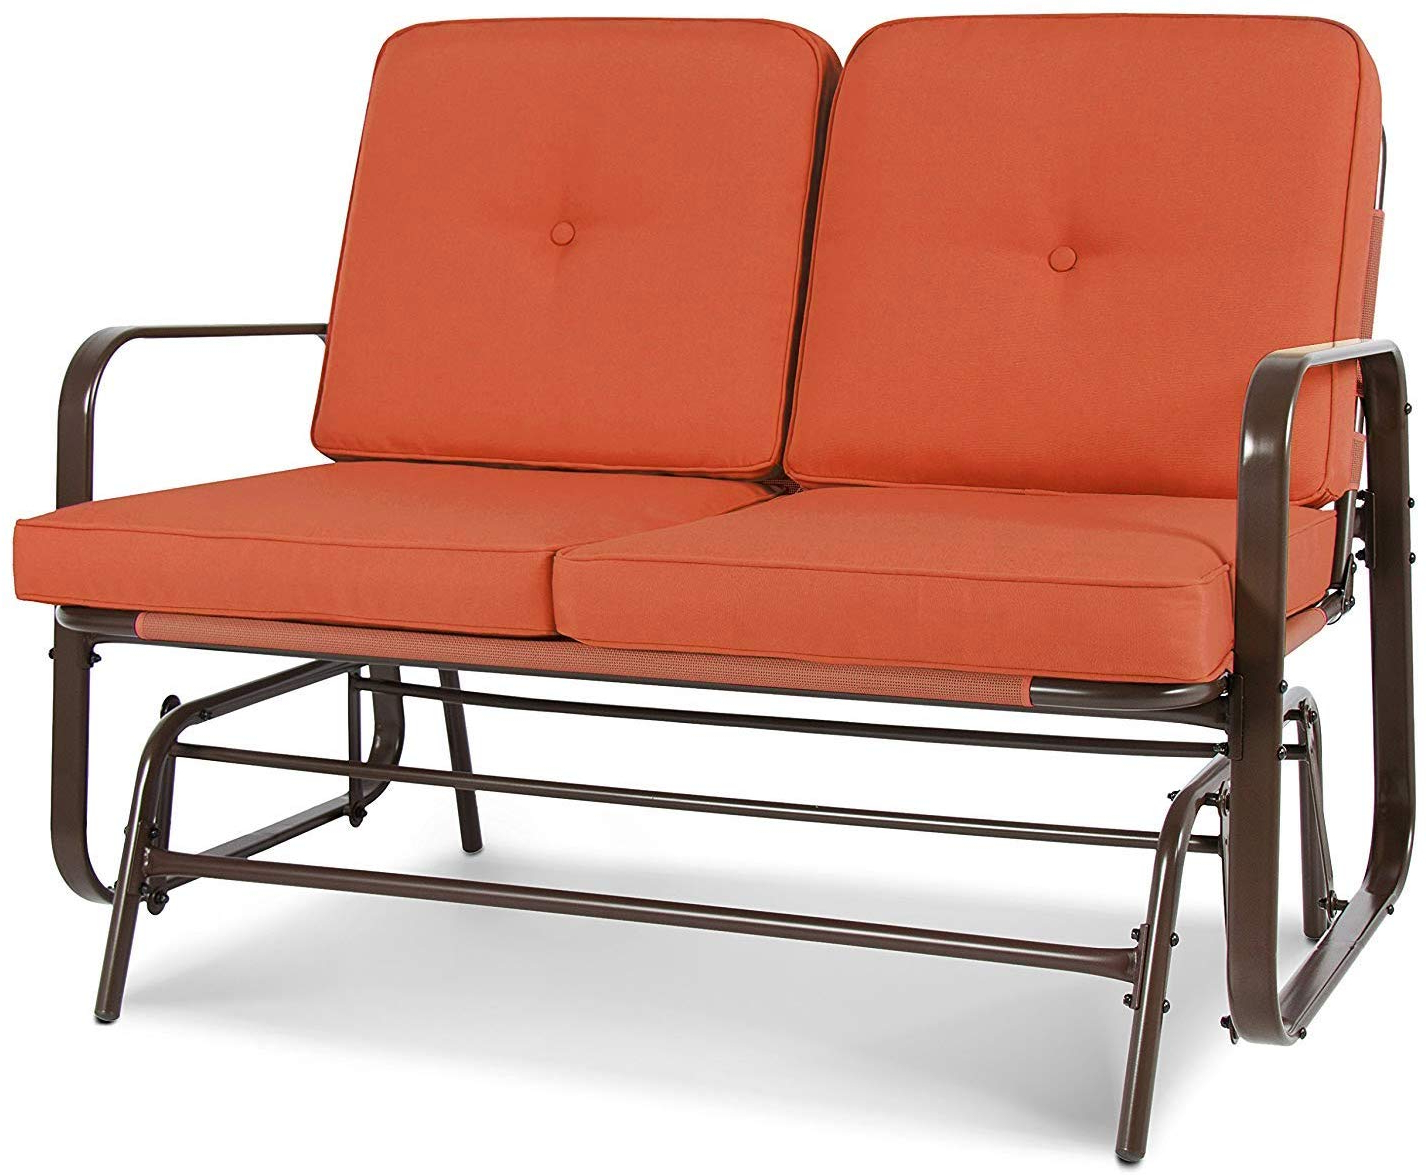 Yu Yusing Patio Glider Loveseat With Cushion, Outdoor Swing Rocking Chair  Garden Seating For 2 Persons With Regard To Most Recently Released Loveseat Glider Benches With Cushions (Gallery 20 of 30)